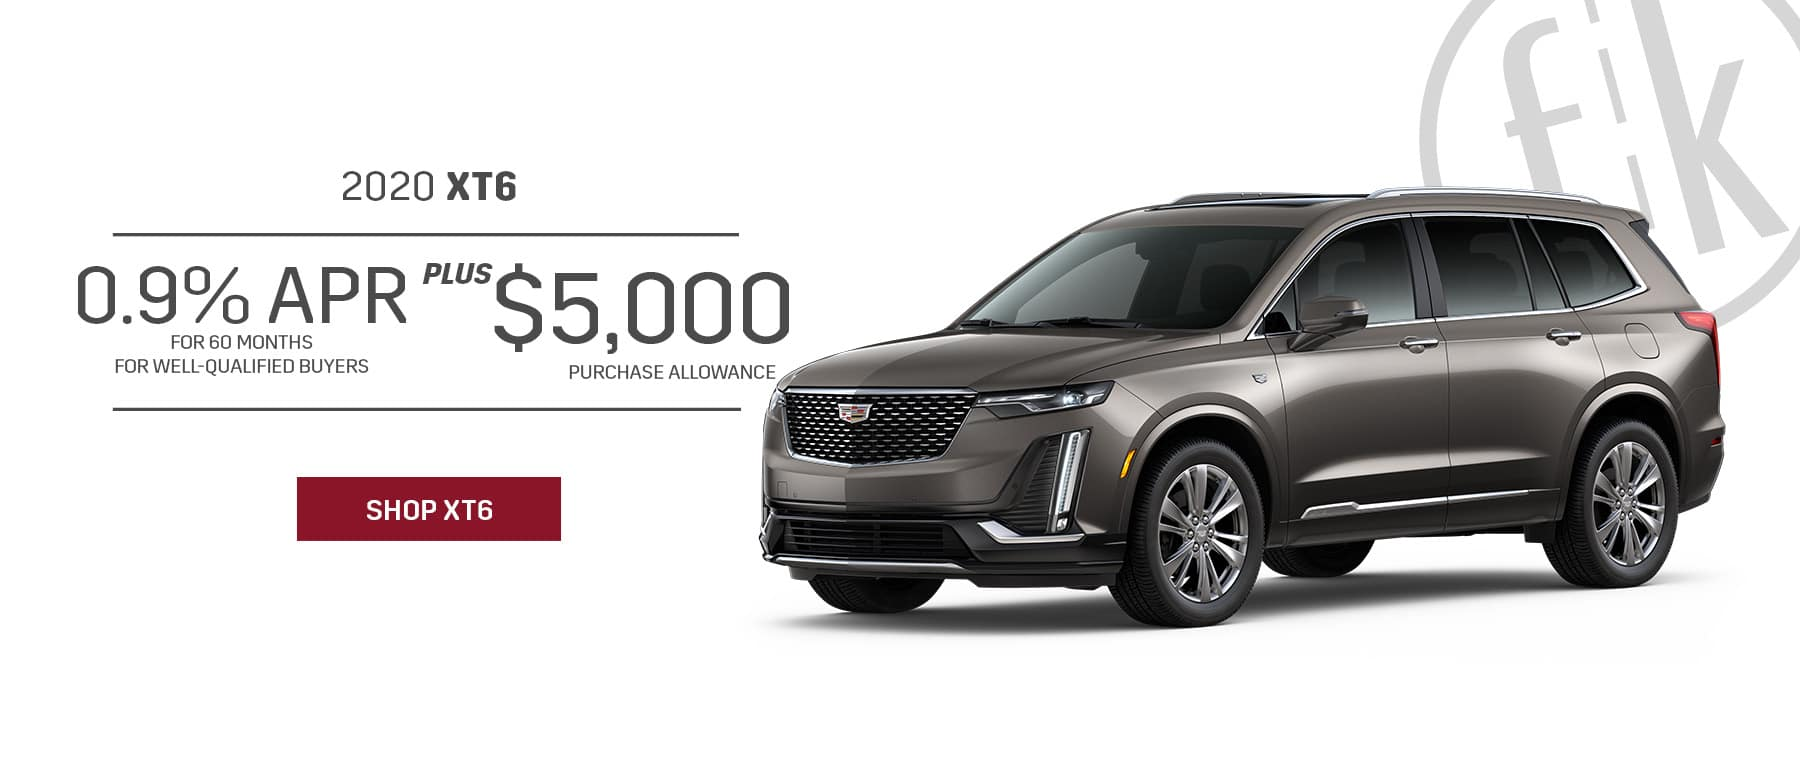 0.9% for 60 mos. PLUS $5,000 Purchase Allowance 2020 XT6